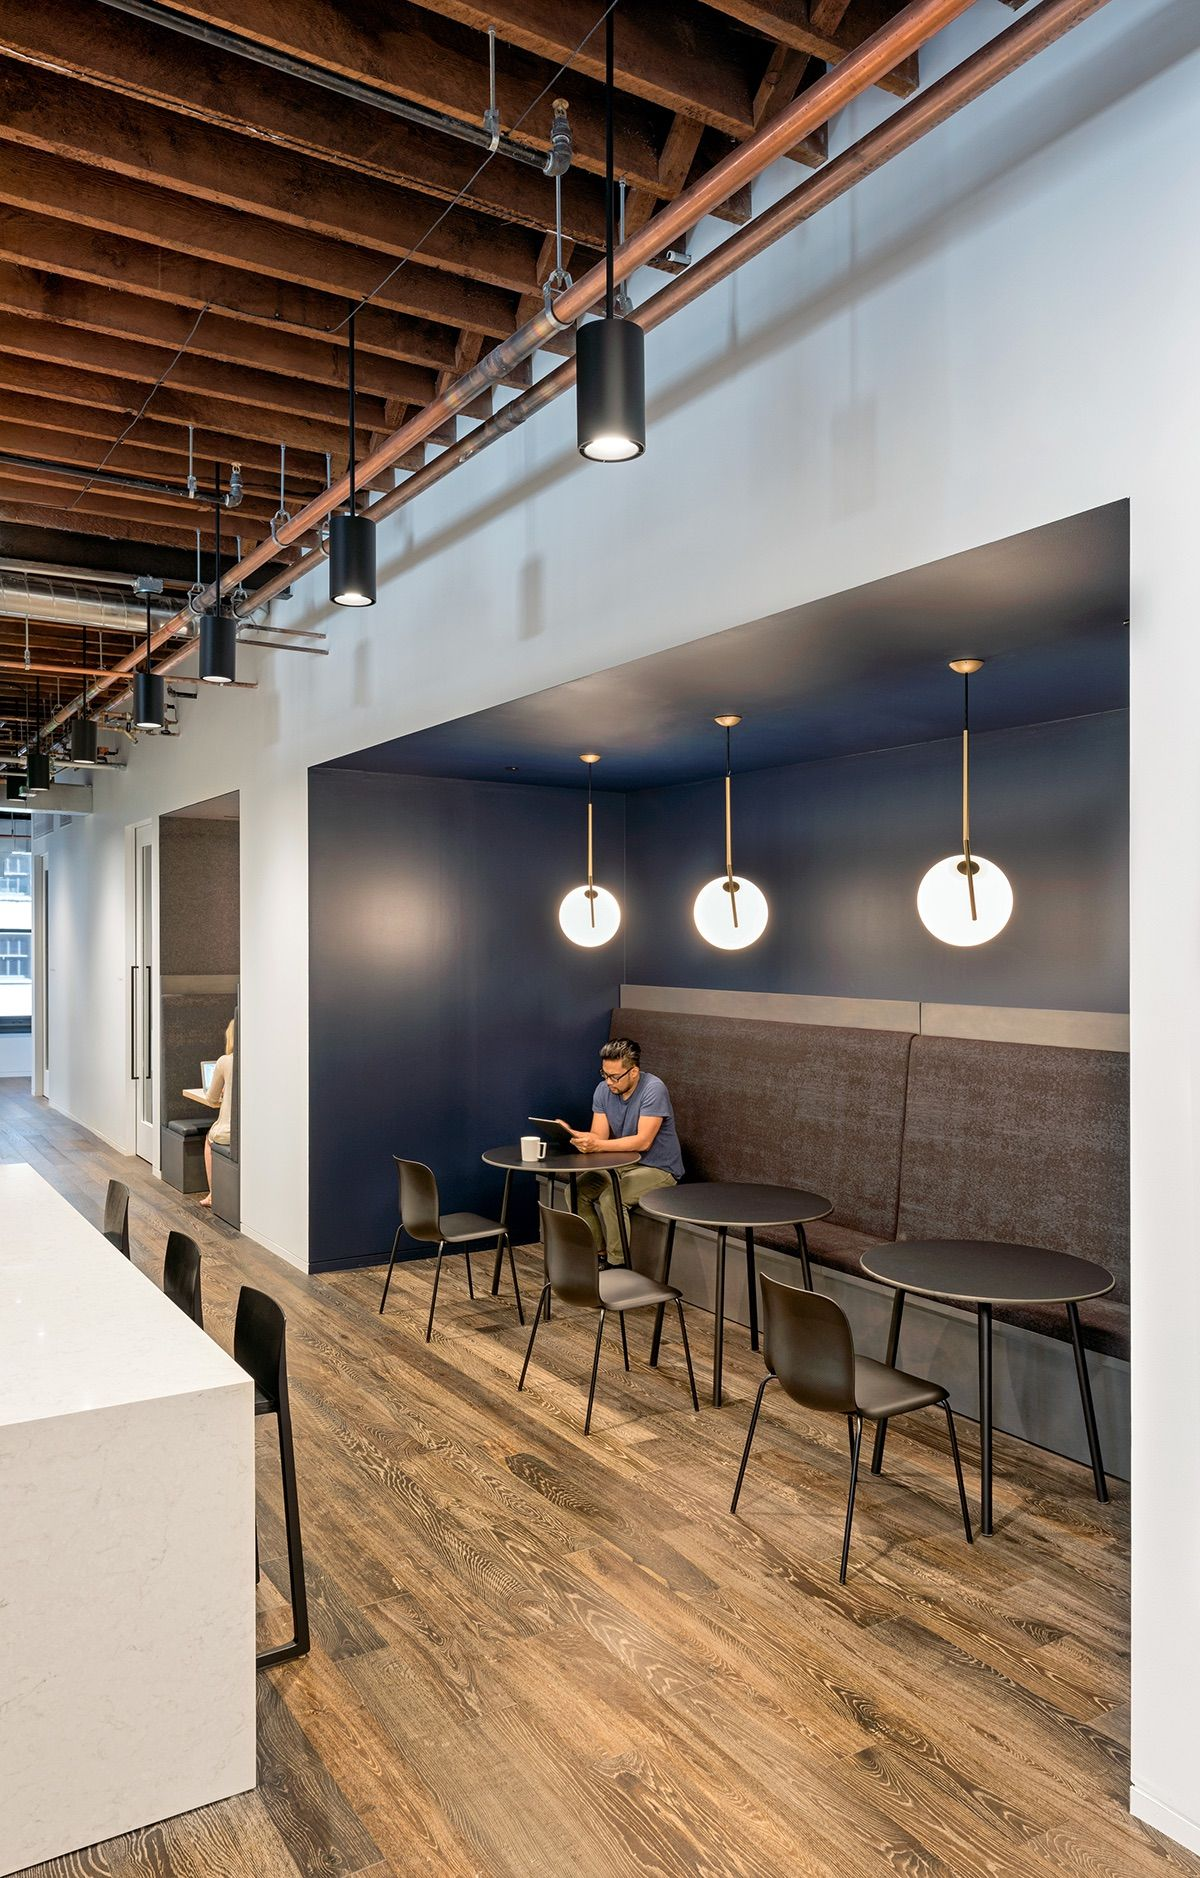 A Tour of Unitys Industrial-Style Headquarters in San Francisco